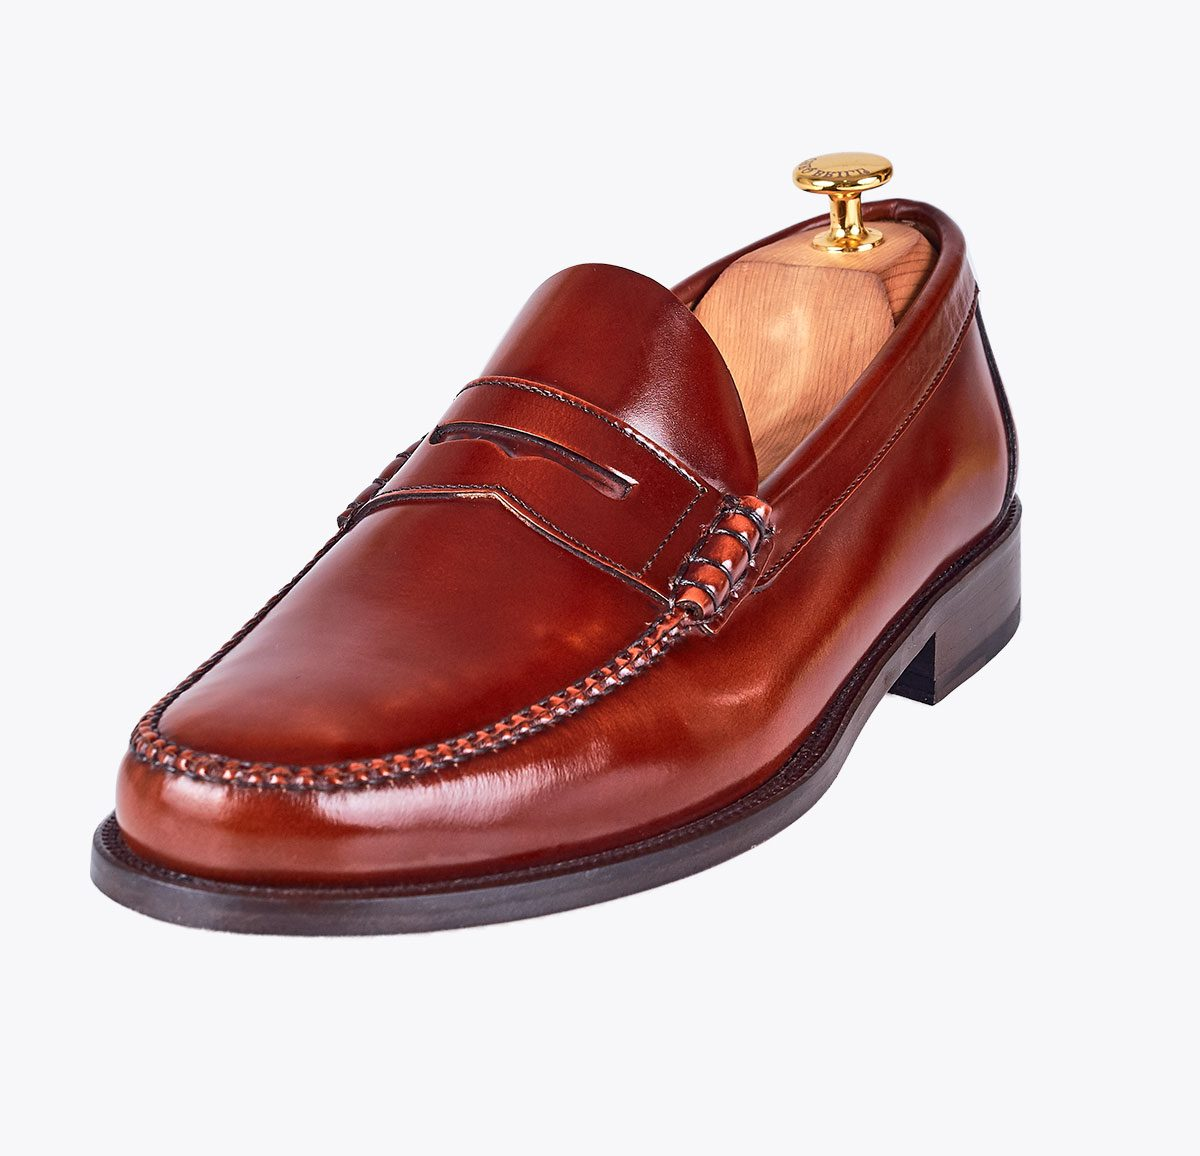 Castellano antifaz chesnut en mandalashoes